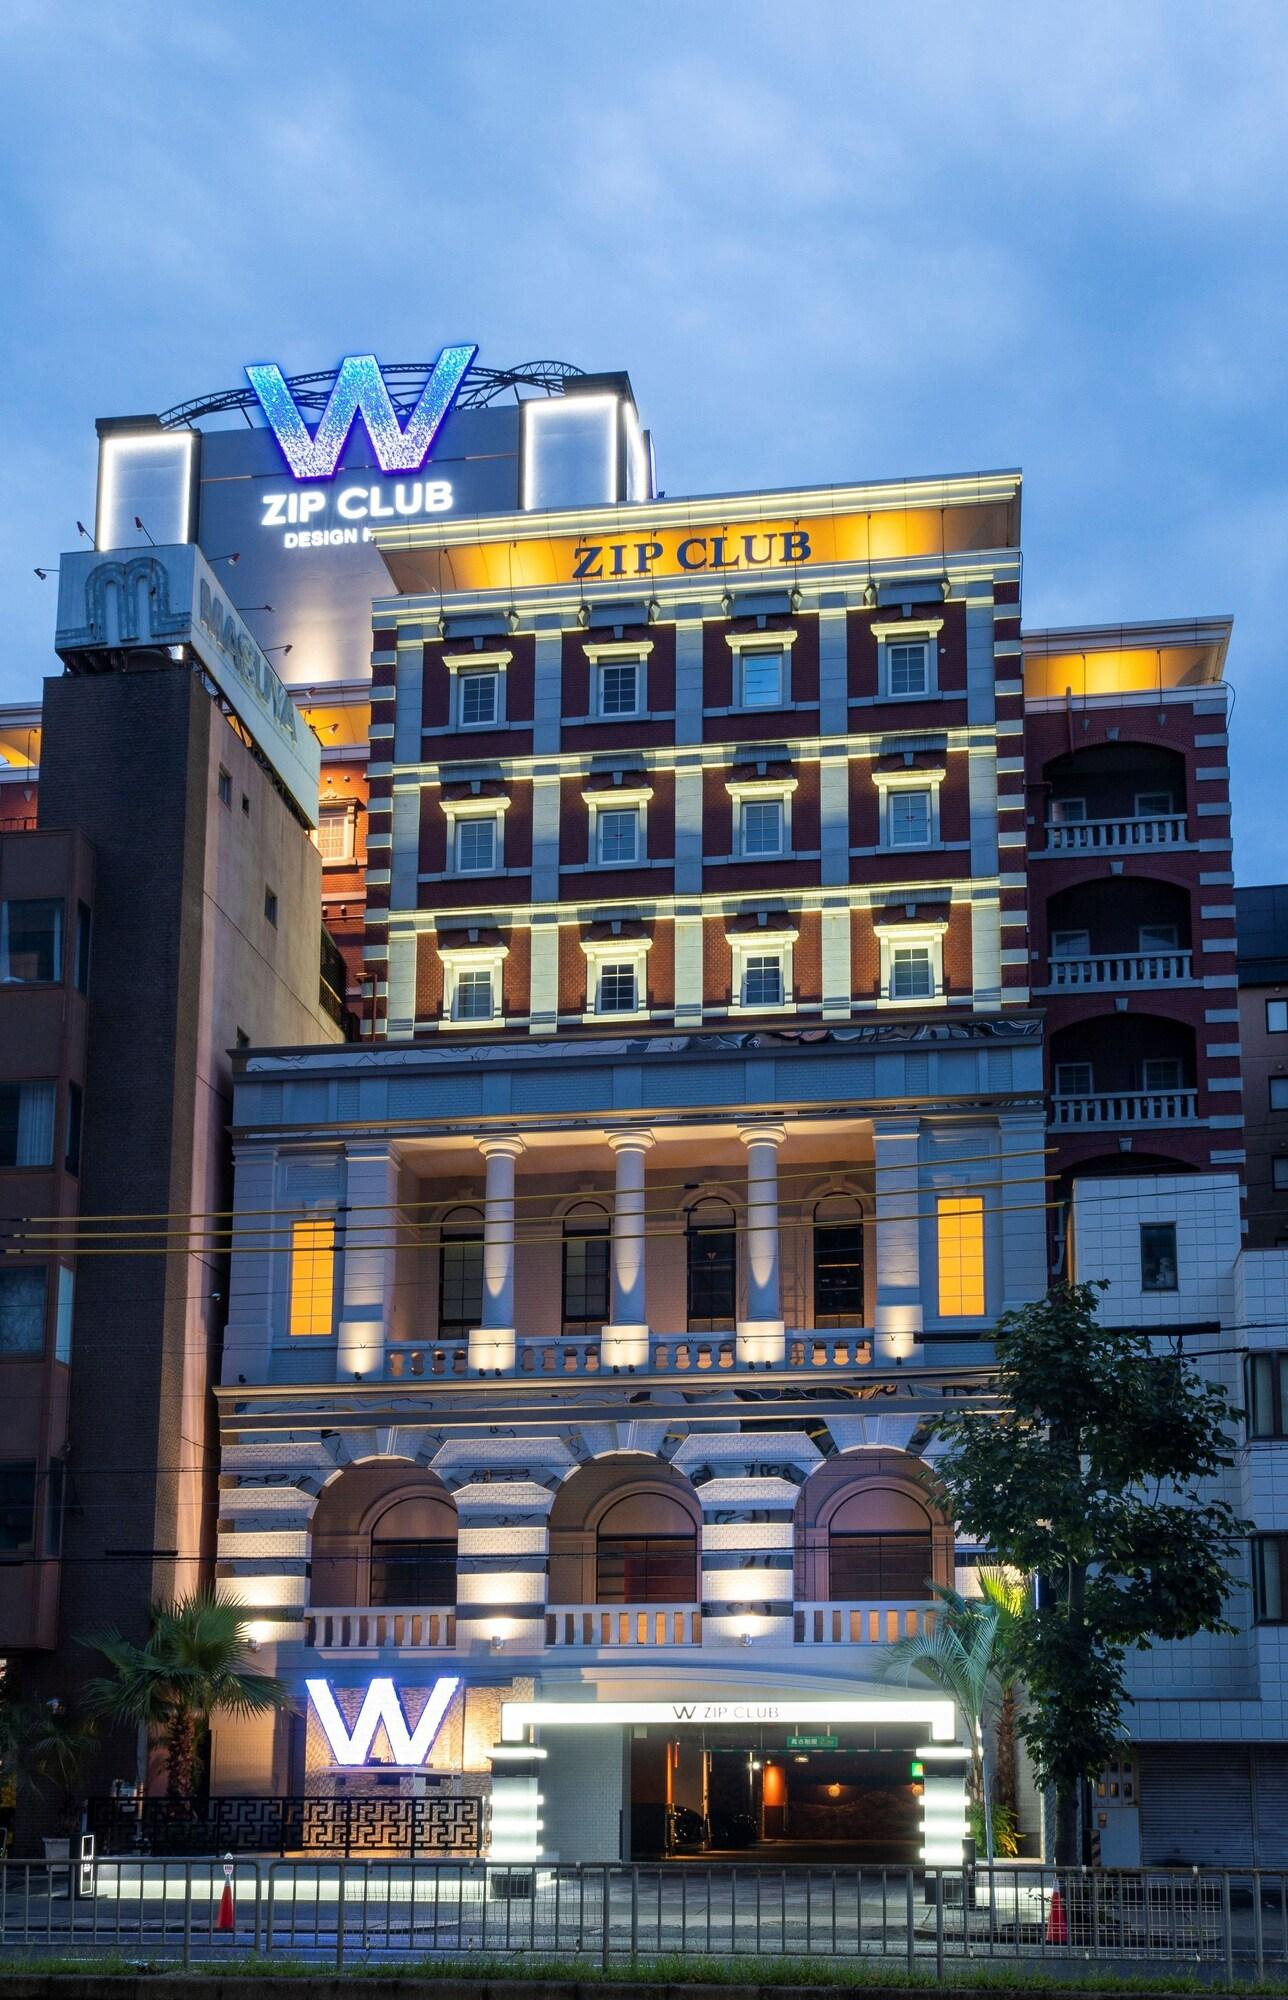 W Zip Club Design Hotel (大人専用)